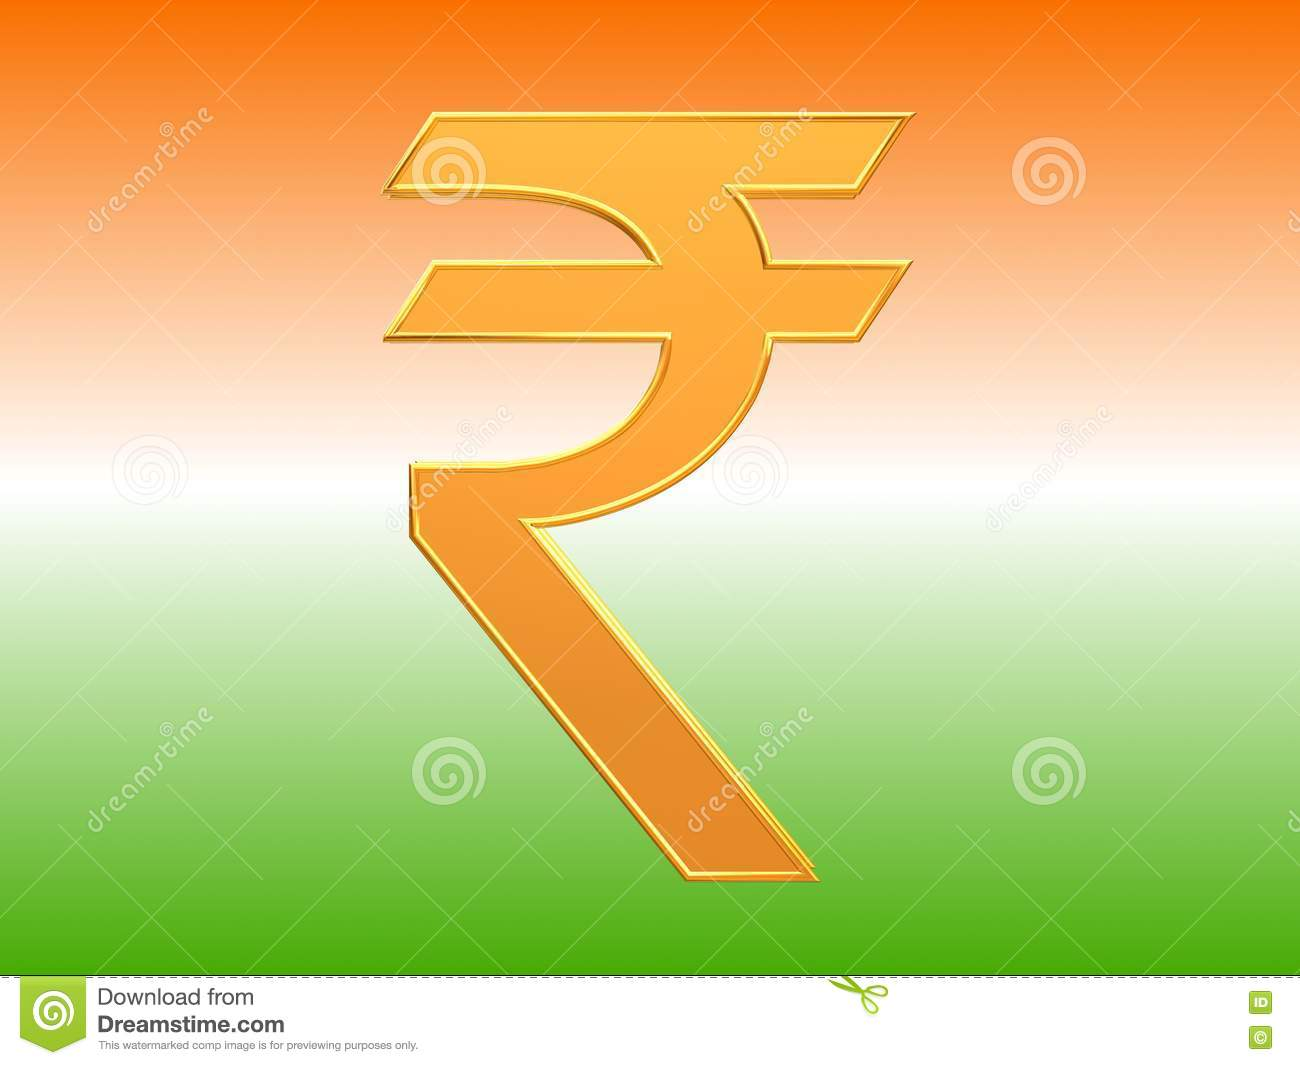 Indian currency rupee symbol design stock illustration indian currency rupee symbol design rupees deccan biocorpaavc Choice Image